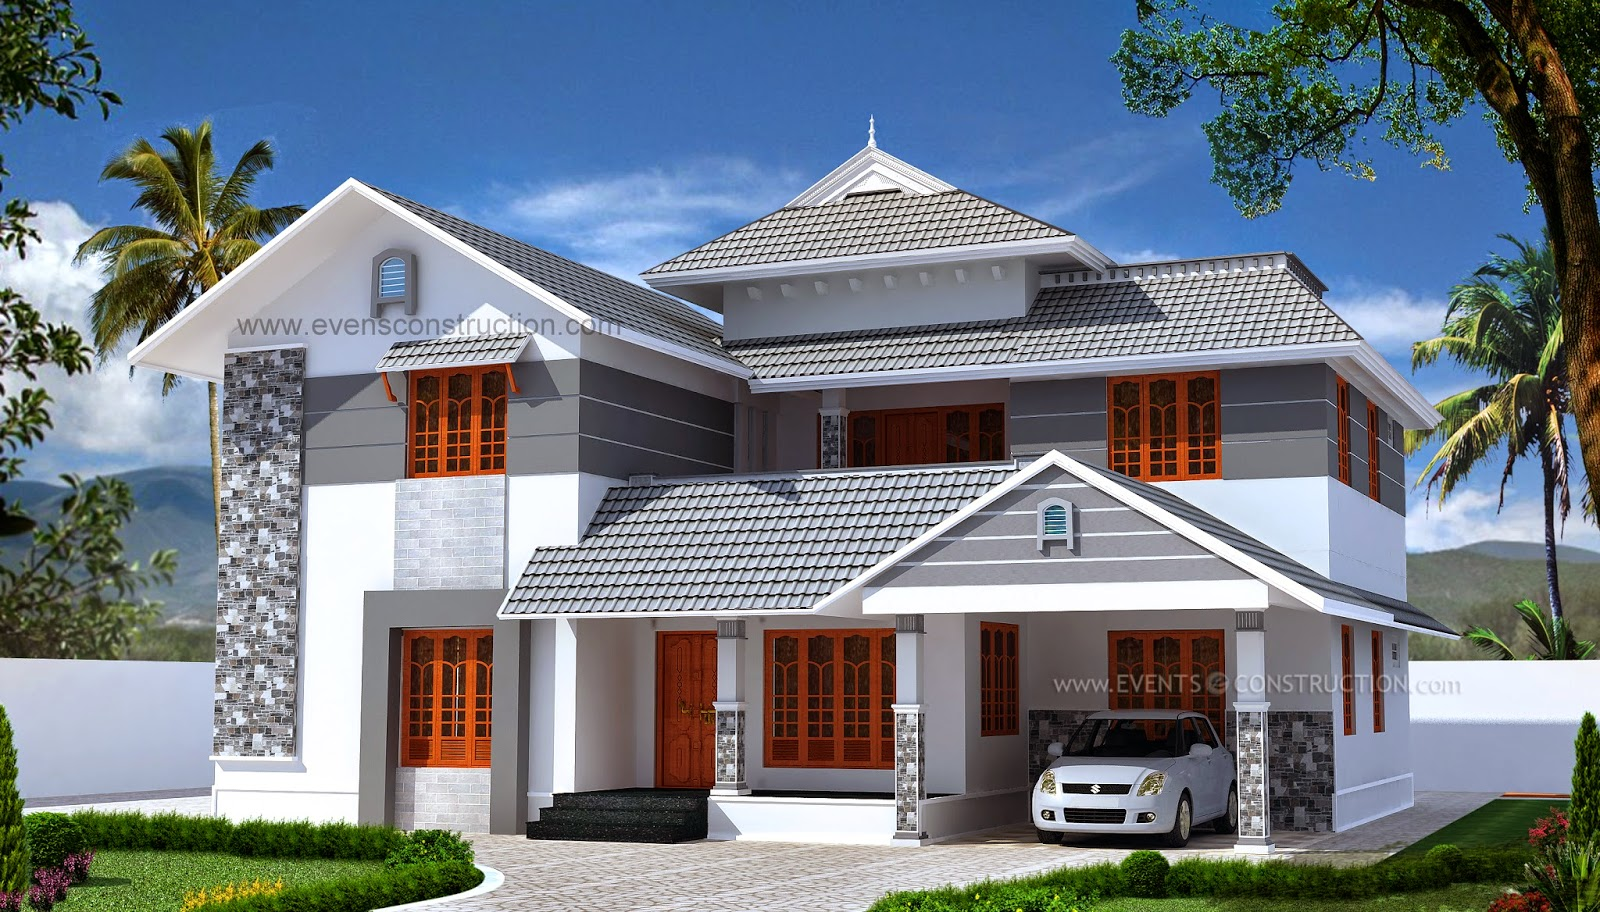 Evens Construction Pvt Ltd Double Storied Sloping Roof Kerala Home